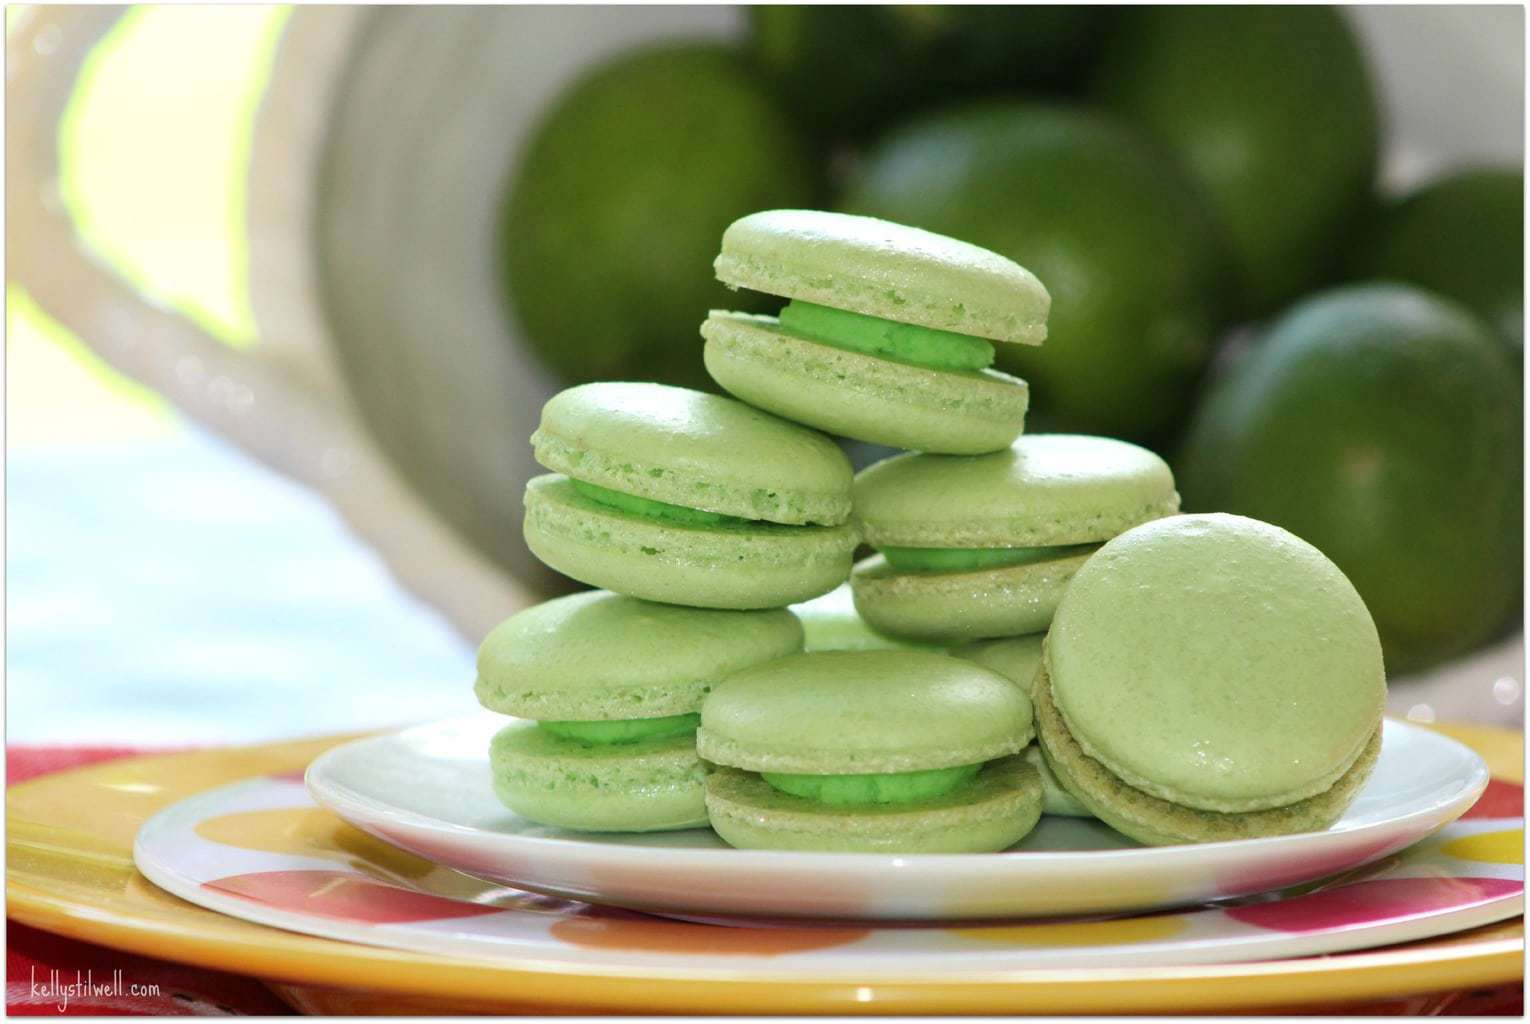 Cookies are one of my favorite foods. I adore macarons, but whenever I see them in a bakery, they are so crazy expensive. Surprisingly, they are not that hard to make! As almond flour is used, that part of the recipe is a bit more expensive, but they are so worth it. Don't buy these when you can DIY. This lime version is perfect for a summer dessert! These would also make a lovely gift.